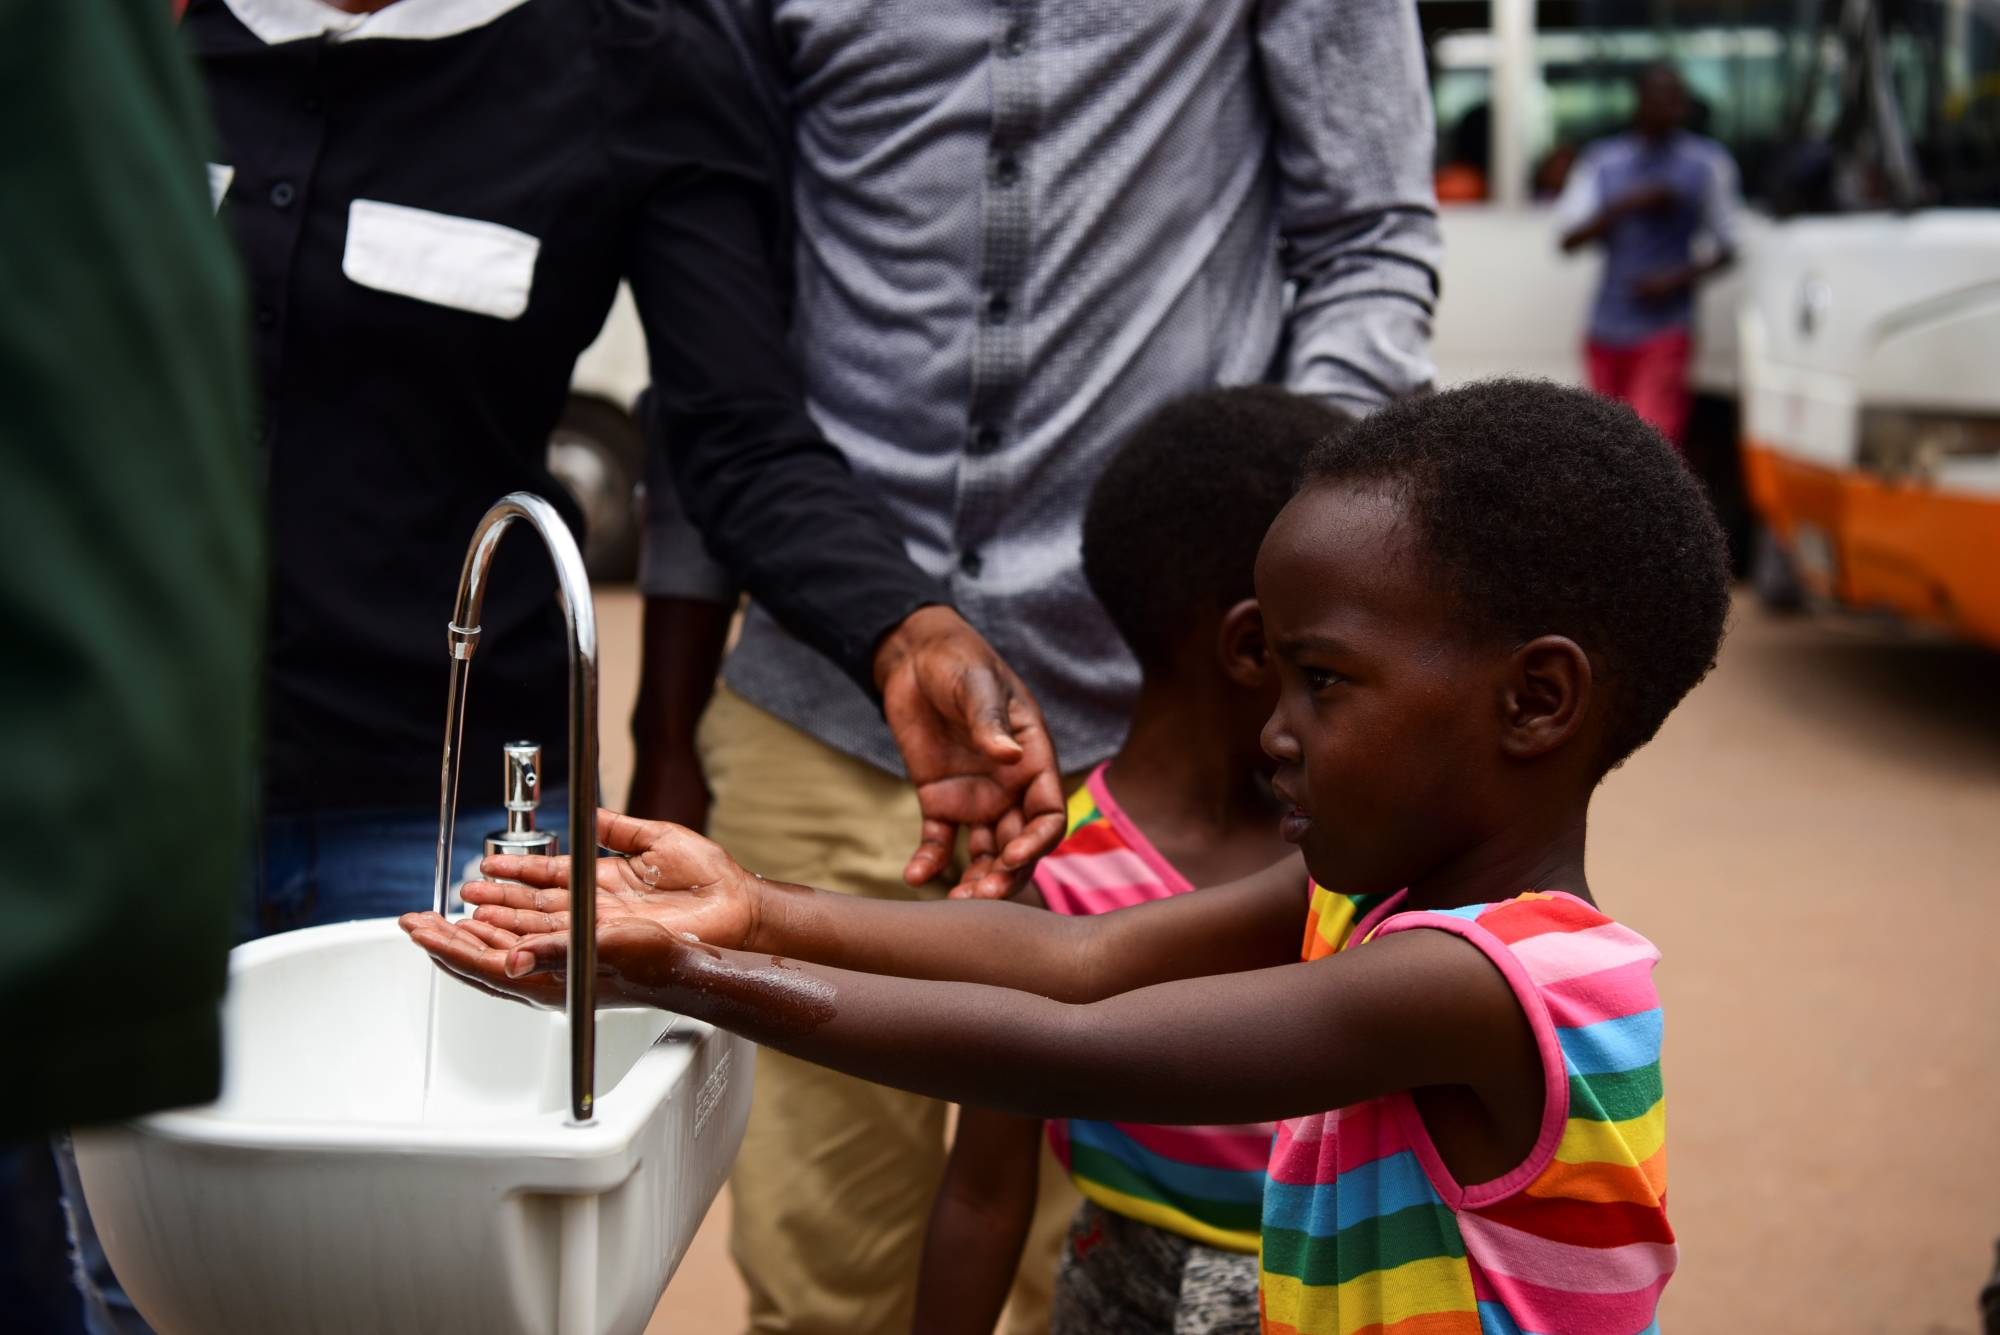 A girl washes her hands at a public hand washing station as a cautionary measure against the coronavirus at Nyabugogo Bus Park in Kigali, Rwanda, on March 11. | REUTERS